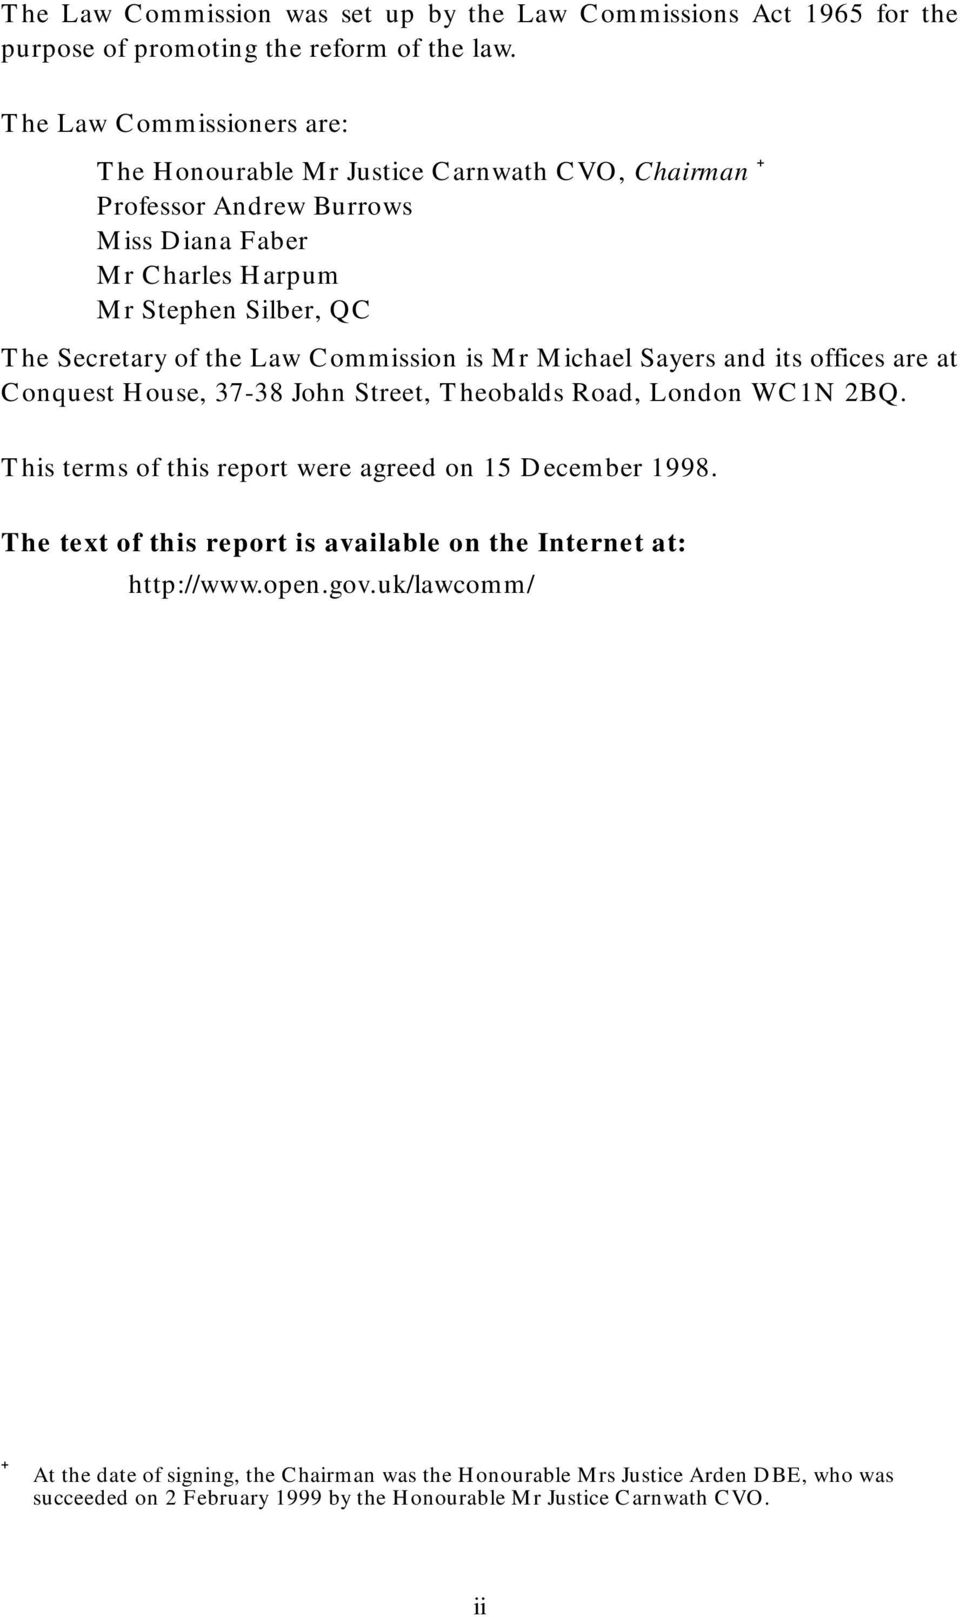 Law Commission is Mr Michael Sayers and its offices are at Conquest House, 37-38 John Street, Theobalds Road, London WC1N 2BQ.